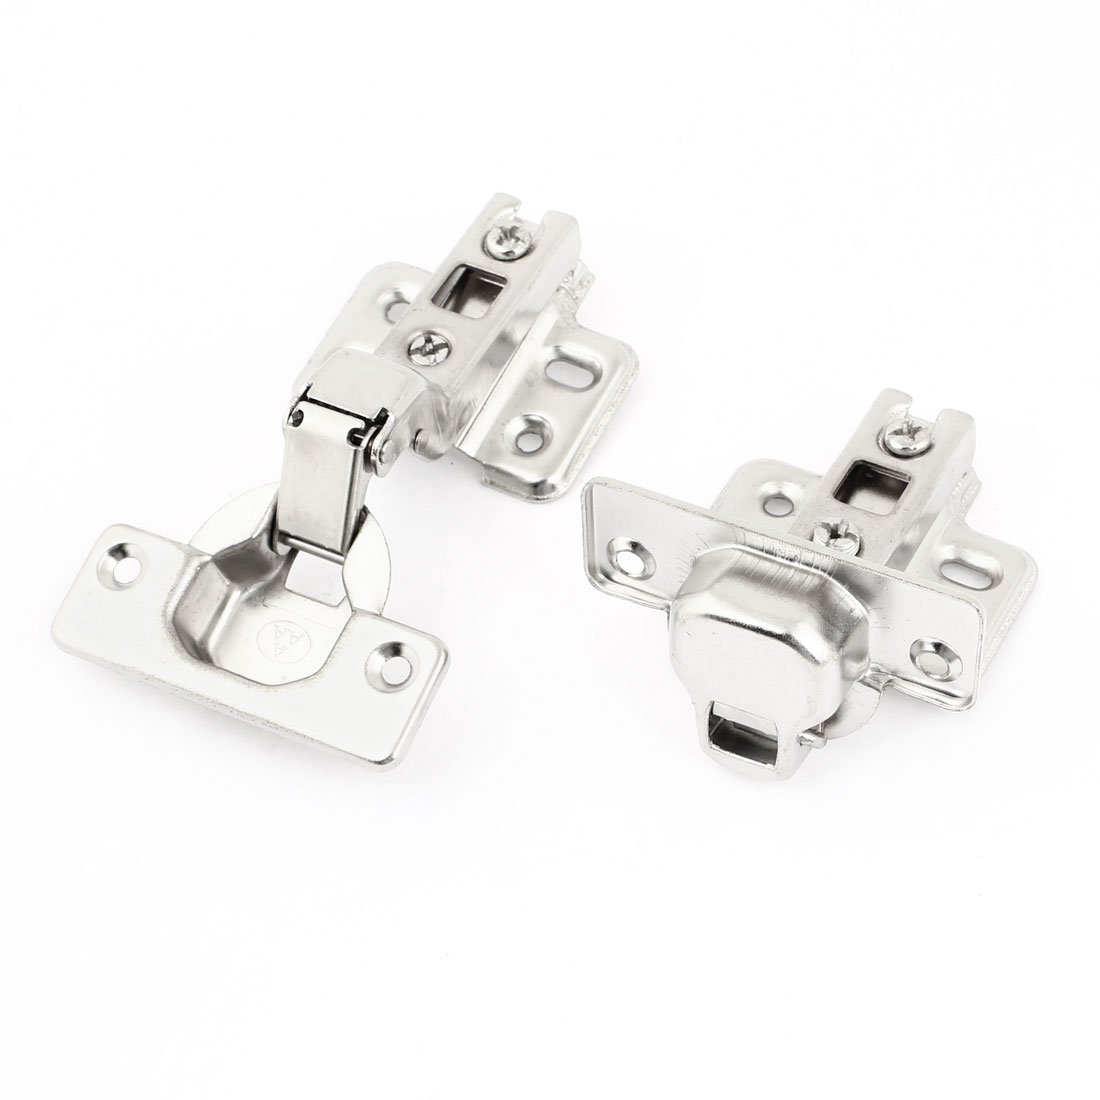 "2Pcs Hardware Tool 4"" Length Metallic Concealed Cabinet Hinge for Cupboard"